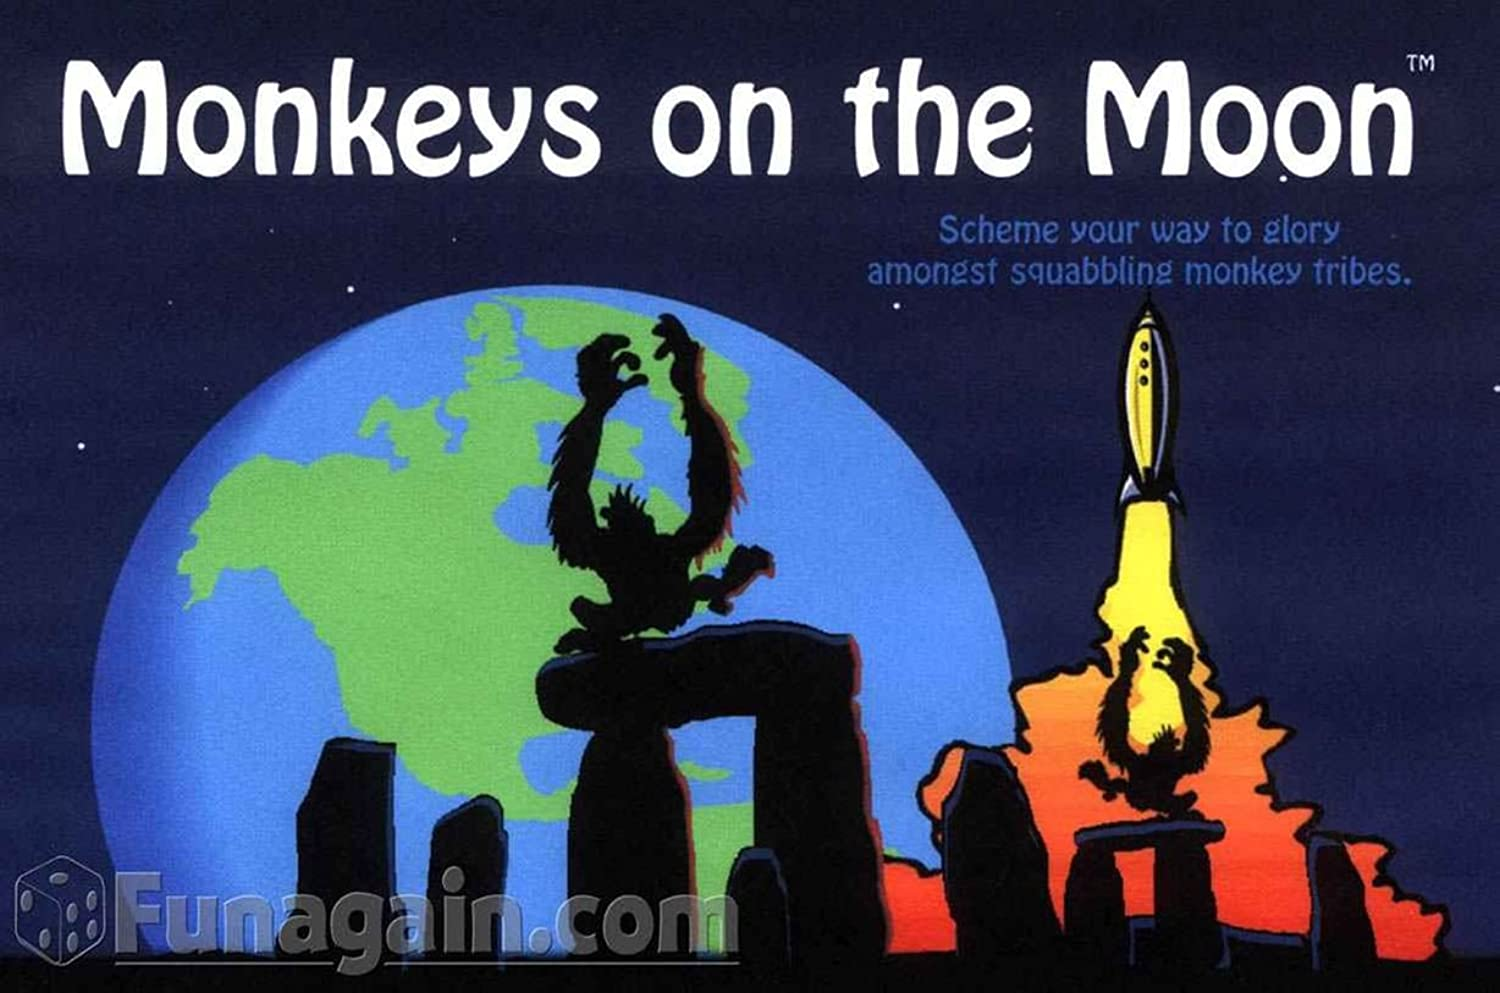 Monkeys on the Moon (dt. Spielregeln)